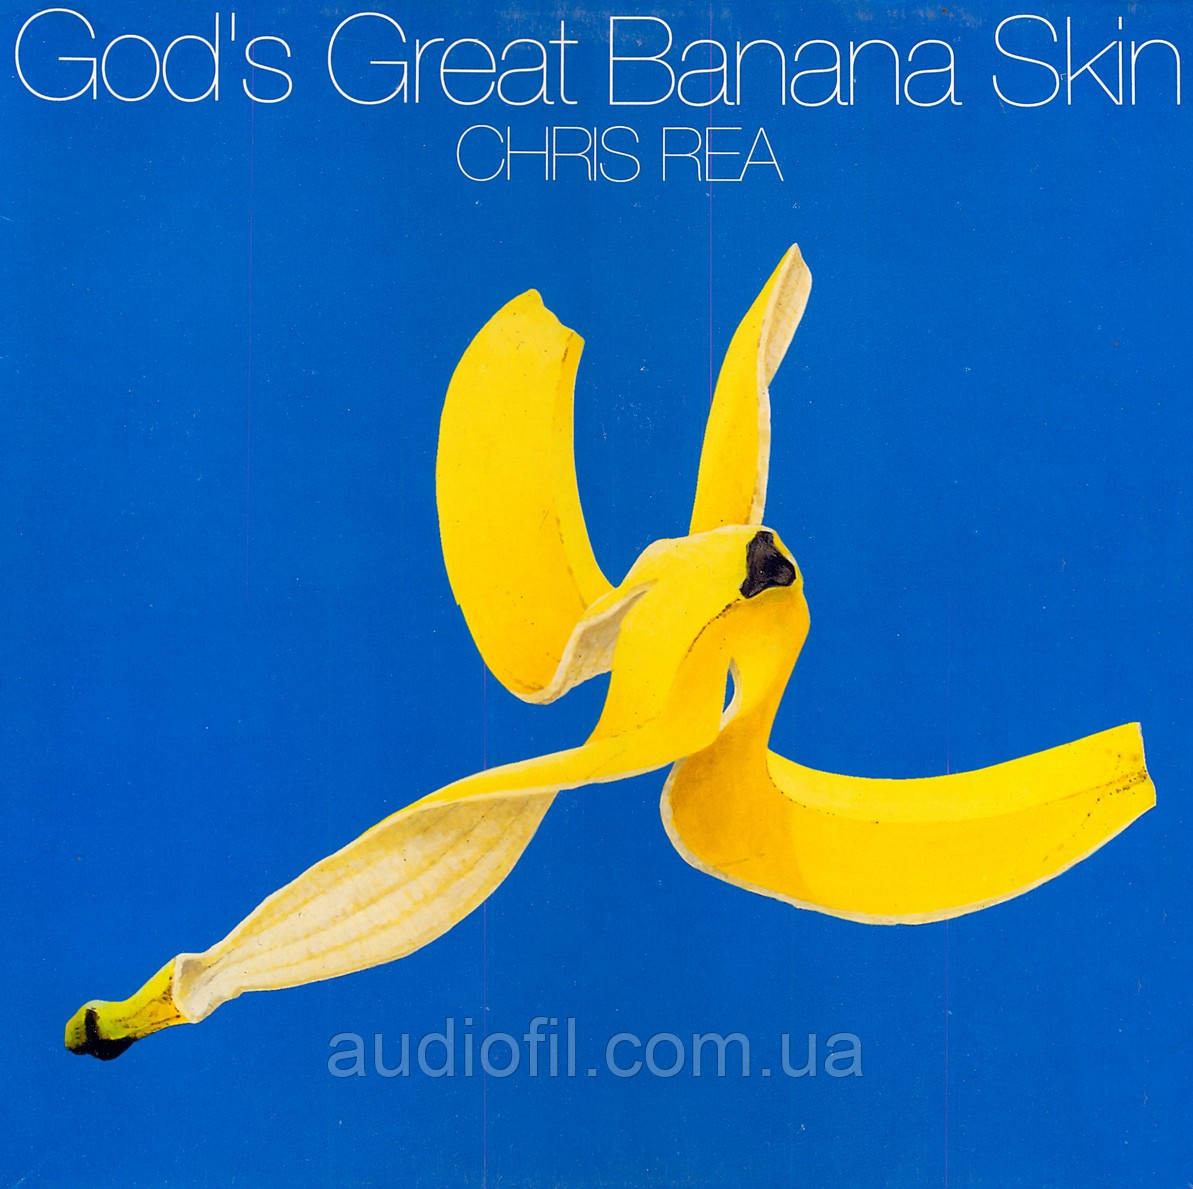 CD диск Chris Rea - God's Great Banana Skin, фото 1